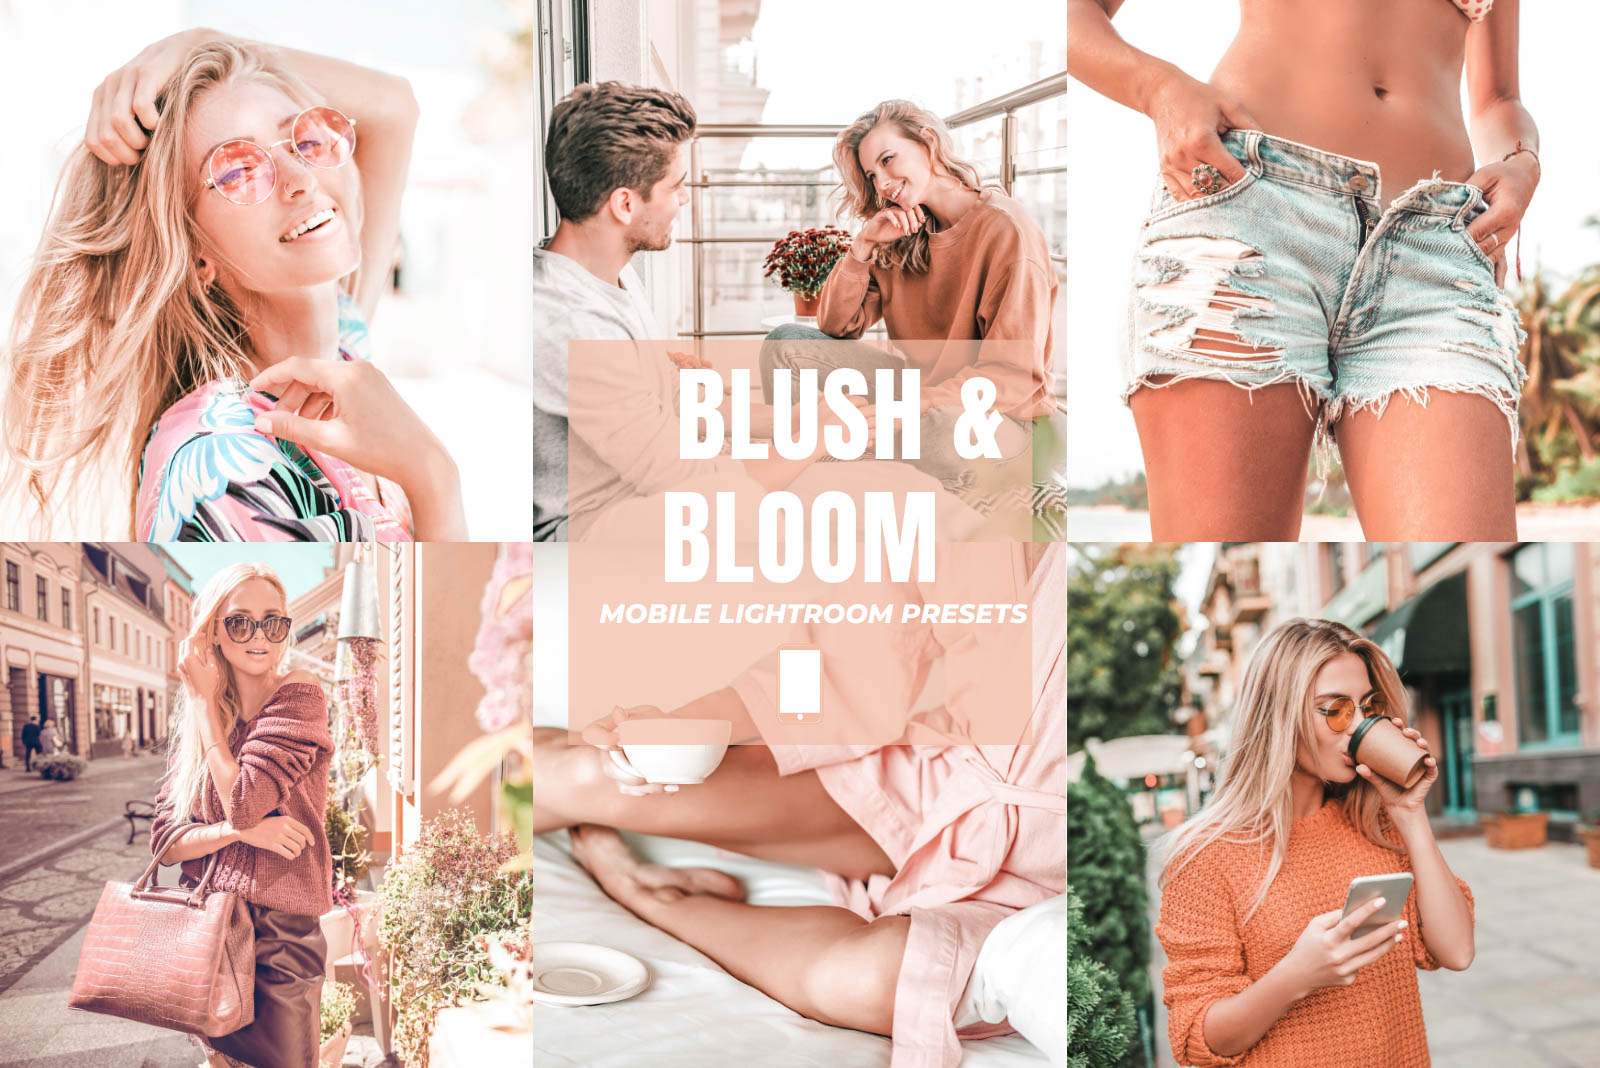 BLUSH & BLOOM MOBILE LIGHTROOM PRESETS by The Viral Presets